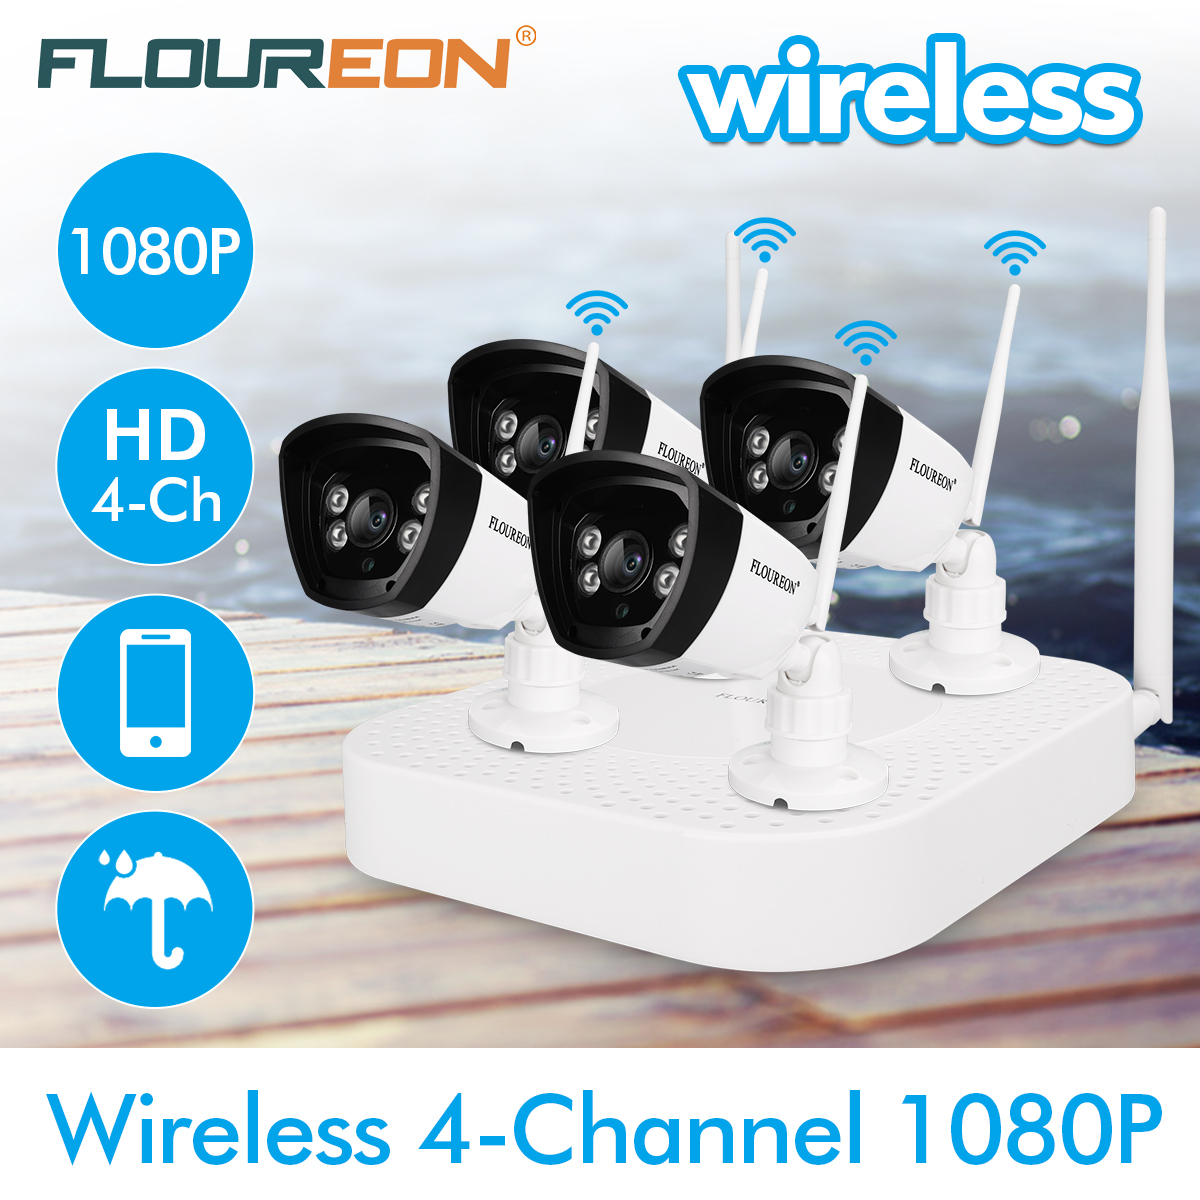 FLOUREON 4CH Wireless CCTV 1080P DVR Kit, Outdoor Wifi WLAN 720P 1.0MP IP Camera Security Video Recorder NVR System